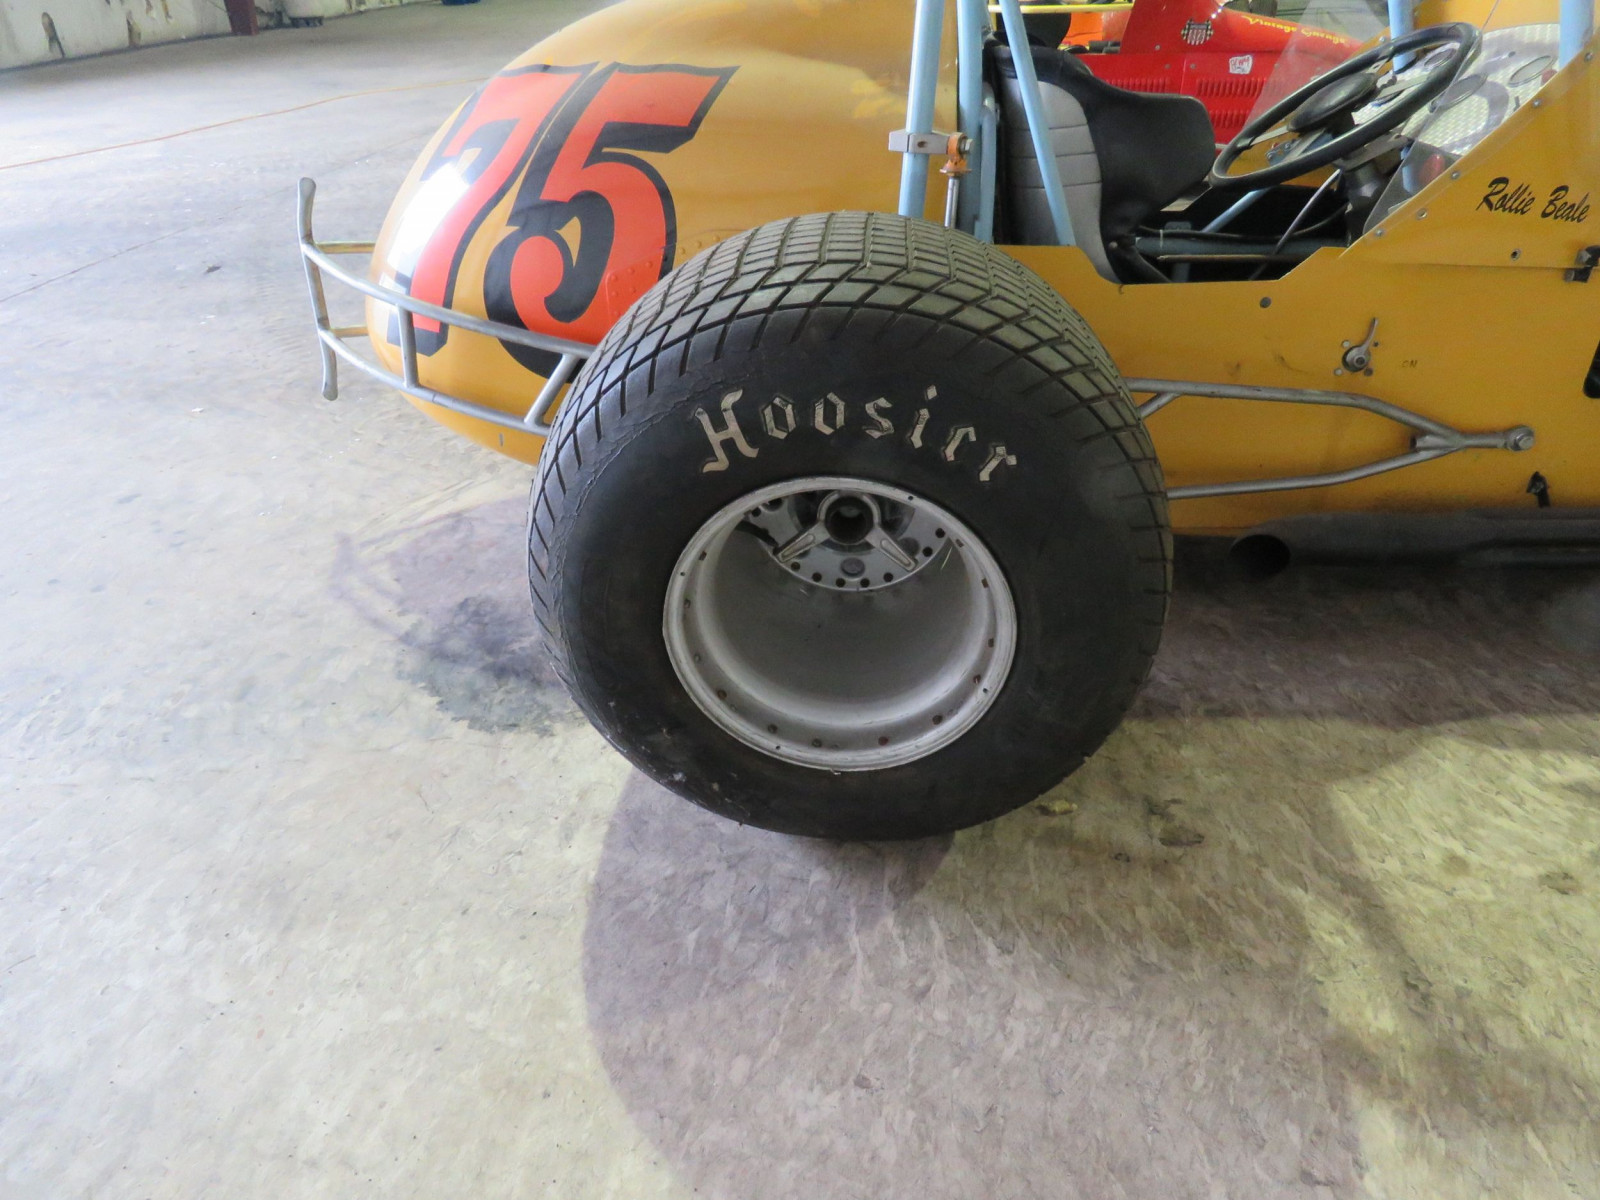 1972 fuel Injected Midget Race Car - Image 5